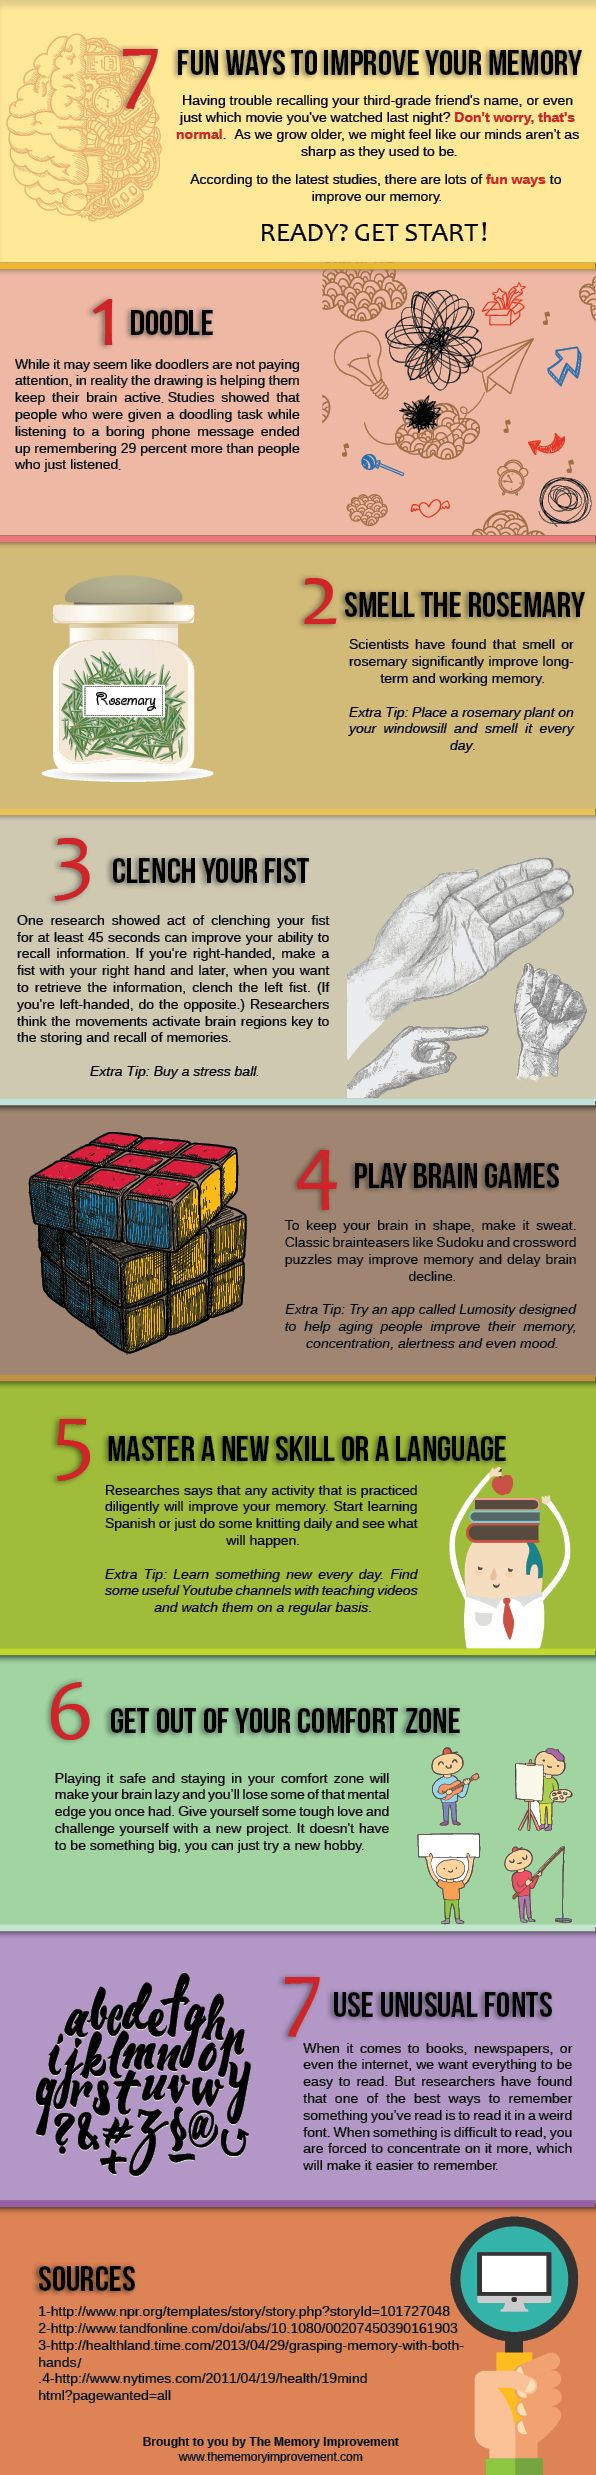 Fun Ways To Improve Your Memory Infographic - http://elearninginfographics.com/fun-ways-to-improve-your-memory/